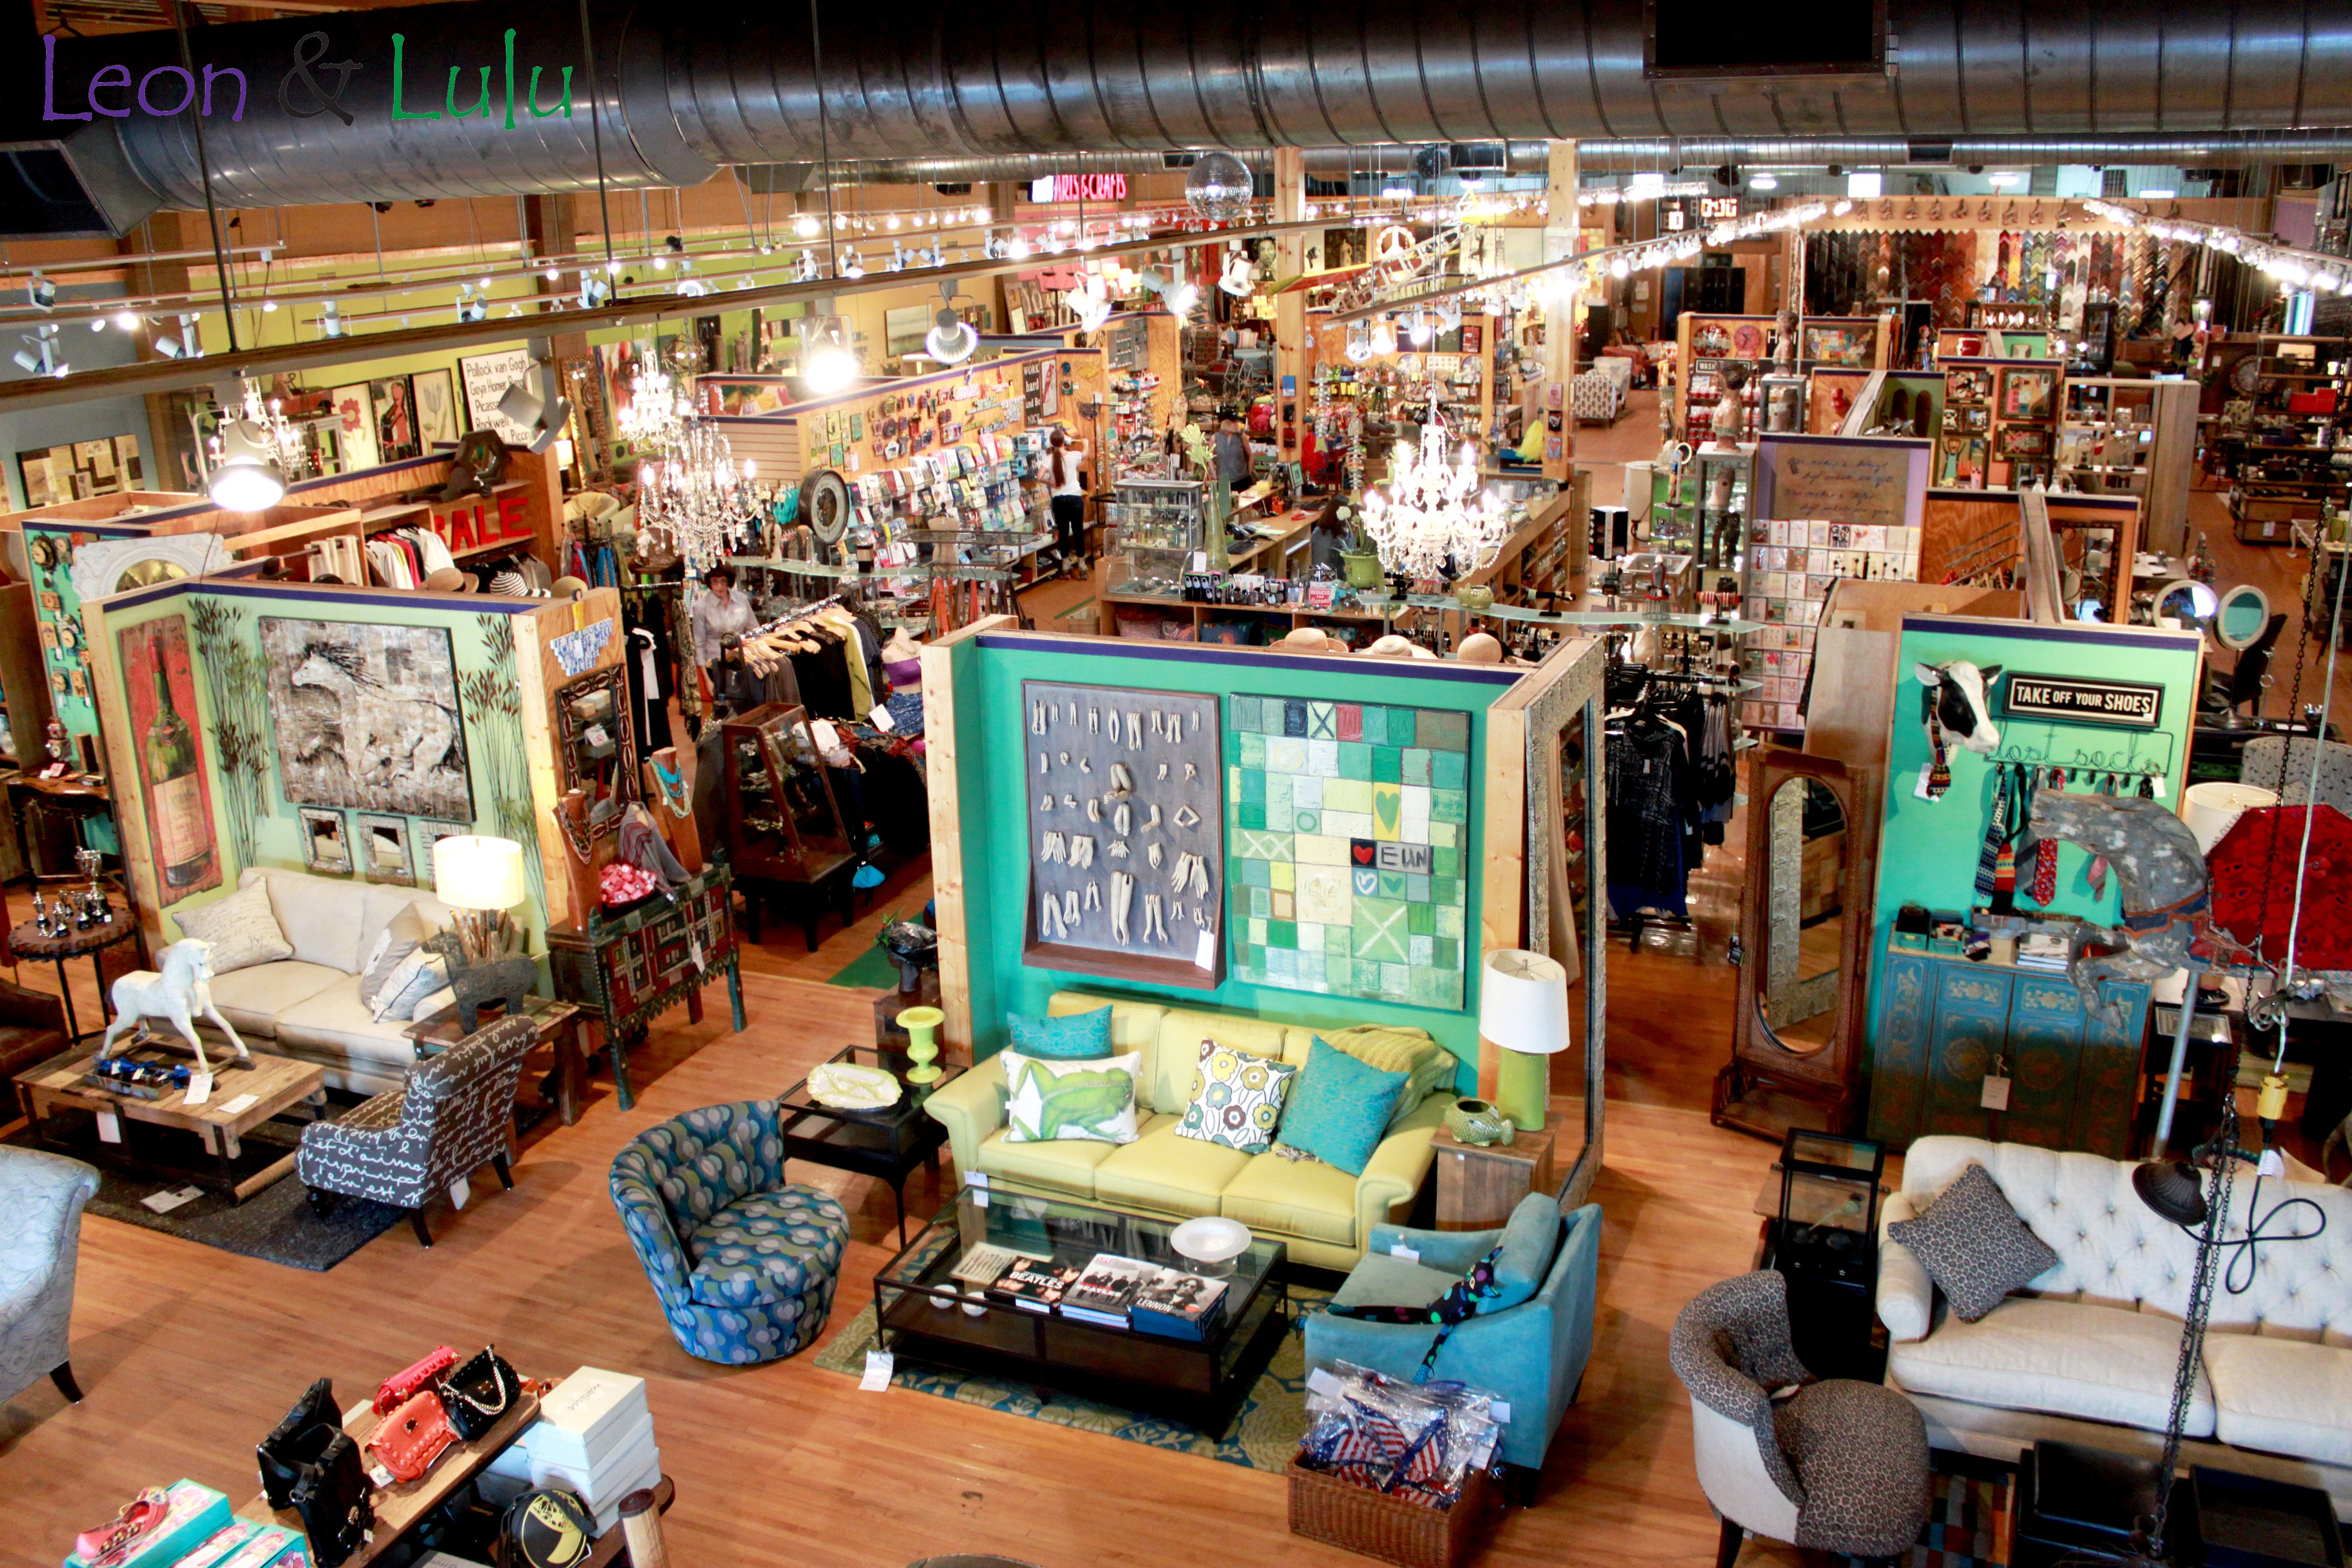 Now THIS is a shop, and a shop photo, to aspire to! It's Leon & Lulu